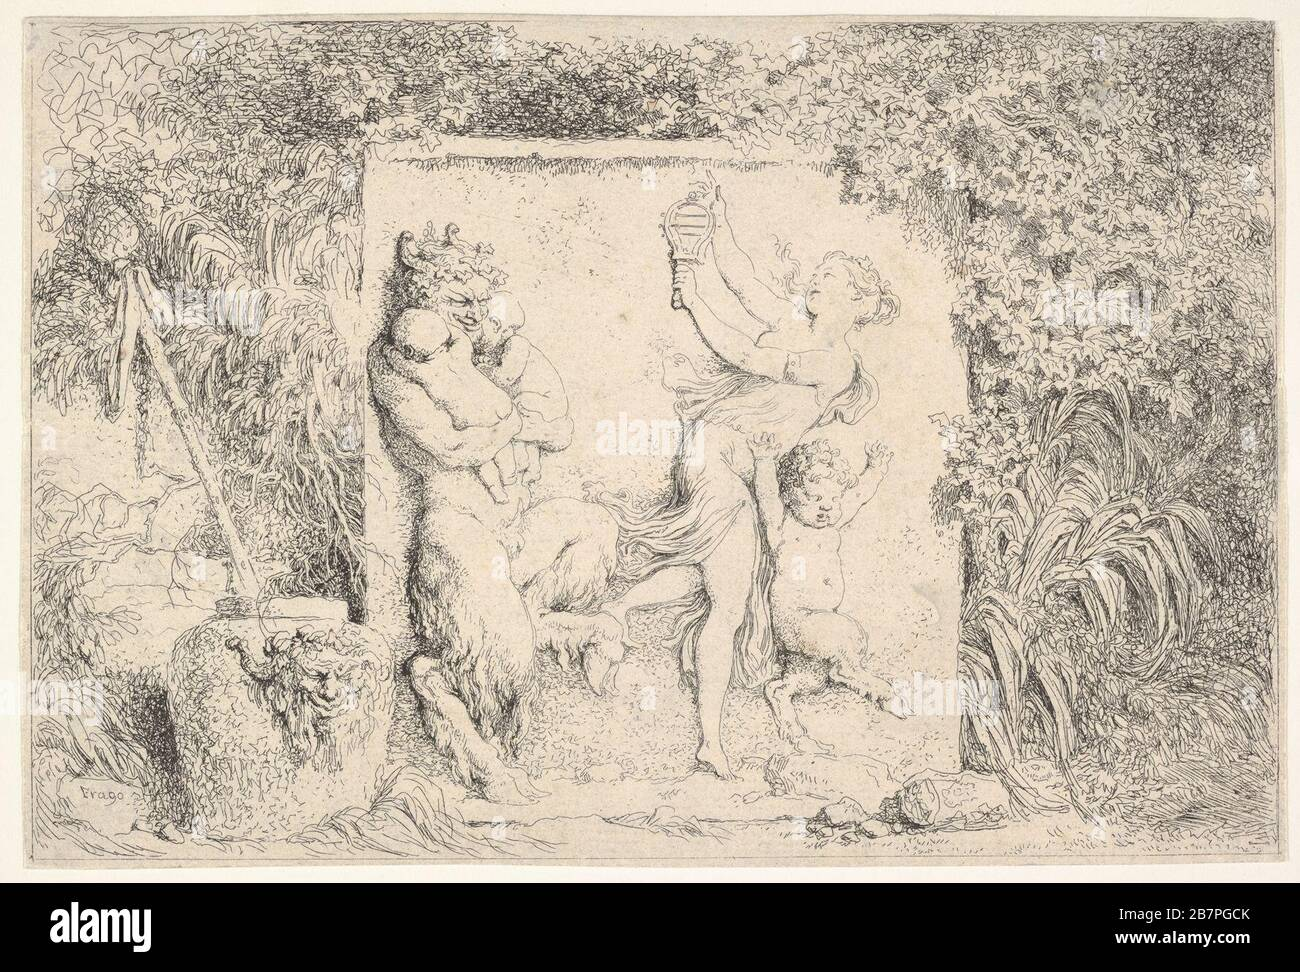 A bas-relief depicting a satyr at left holding two infants, another child satyr to right, dancing to the sound of the sistrum played by the woman in center, around the relief, a vase decorated with the head of a satyr, plants, and a thyrsus, from 'Four Bacchanalia' (Quatre Bacchanales), 1763. Stock Photo